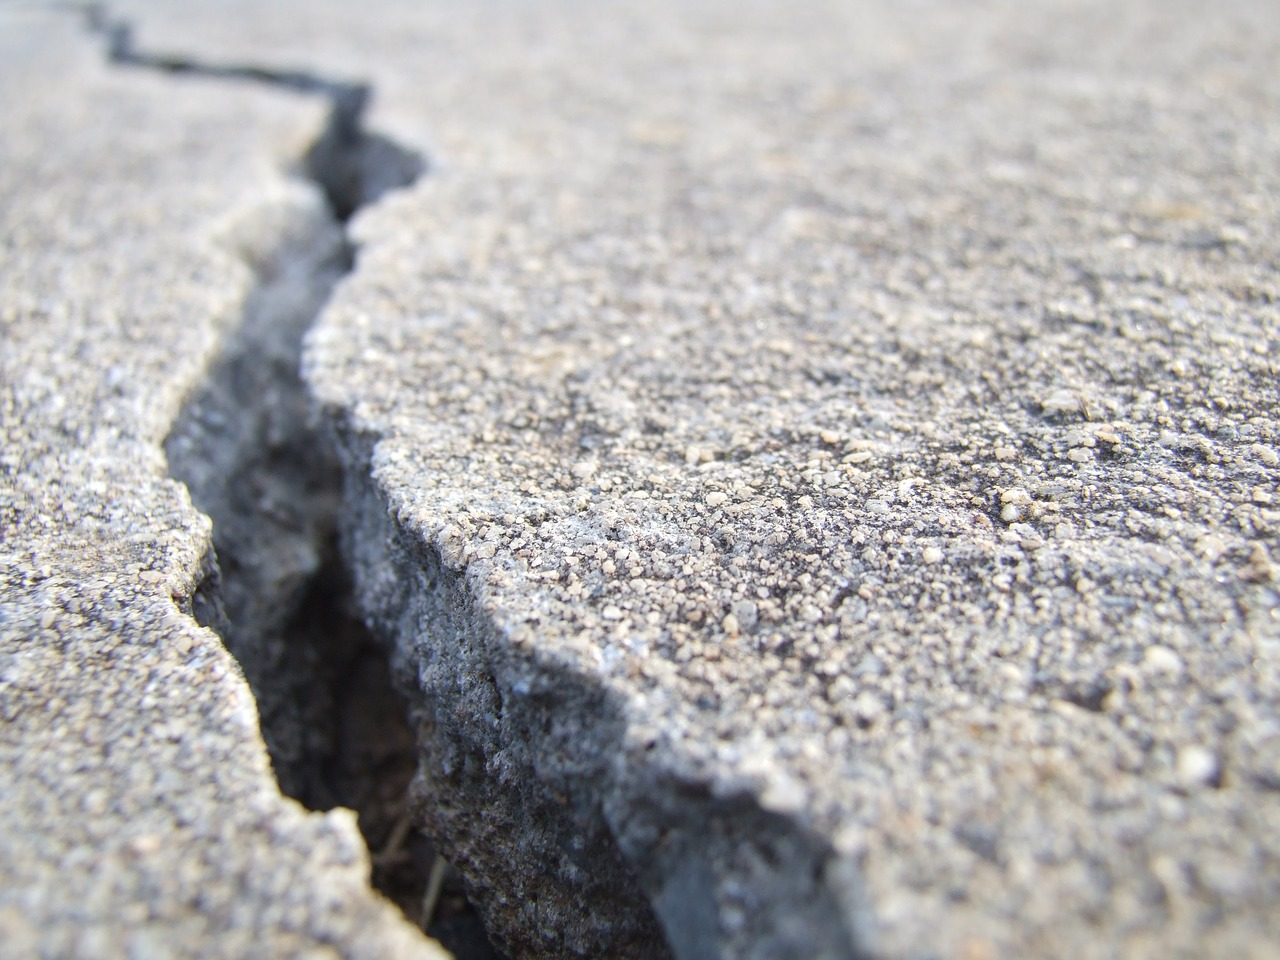 Download free photo of Crack, concrete, break, broken, cracked - from  needpix.com